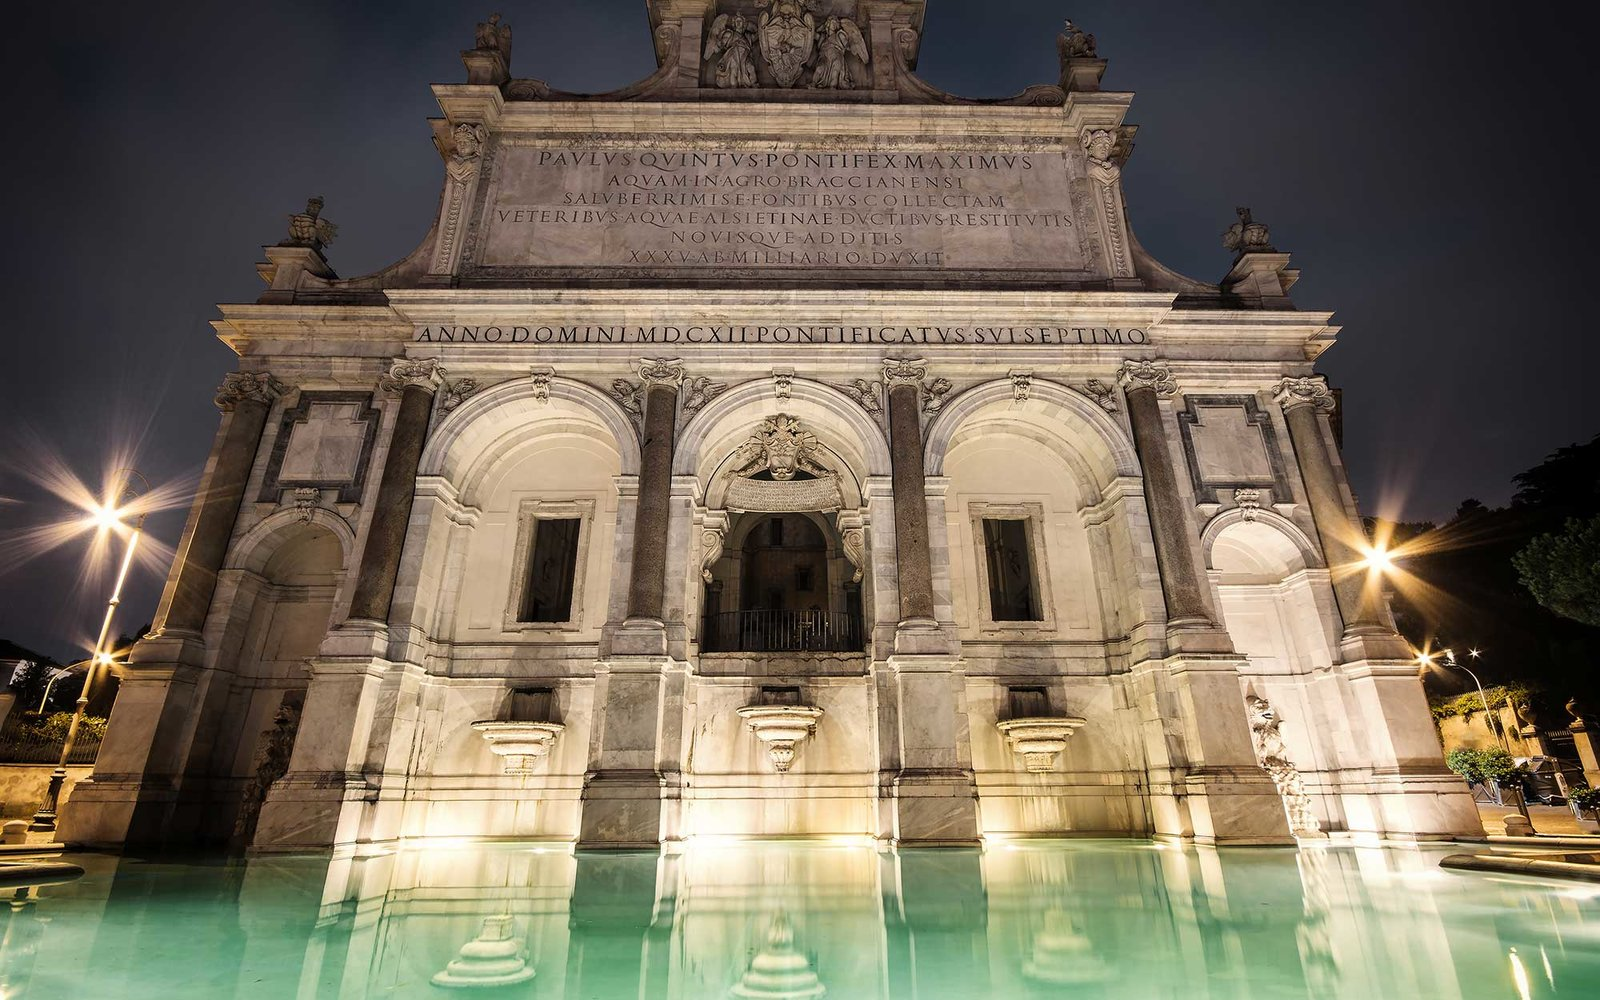 Fontana dell'Acqua Paola at night